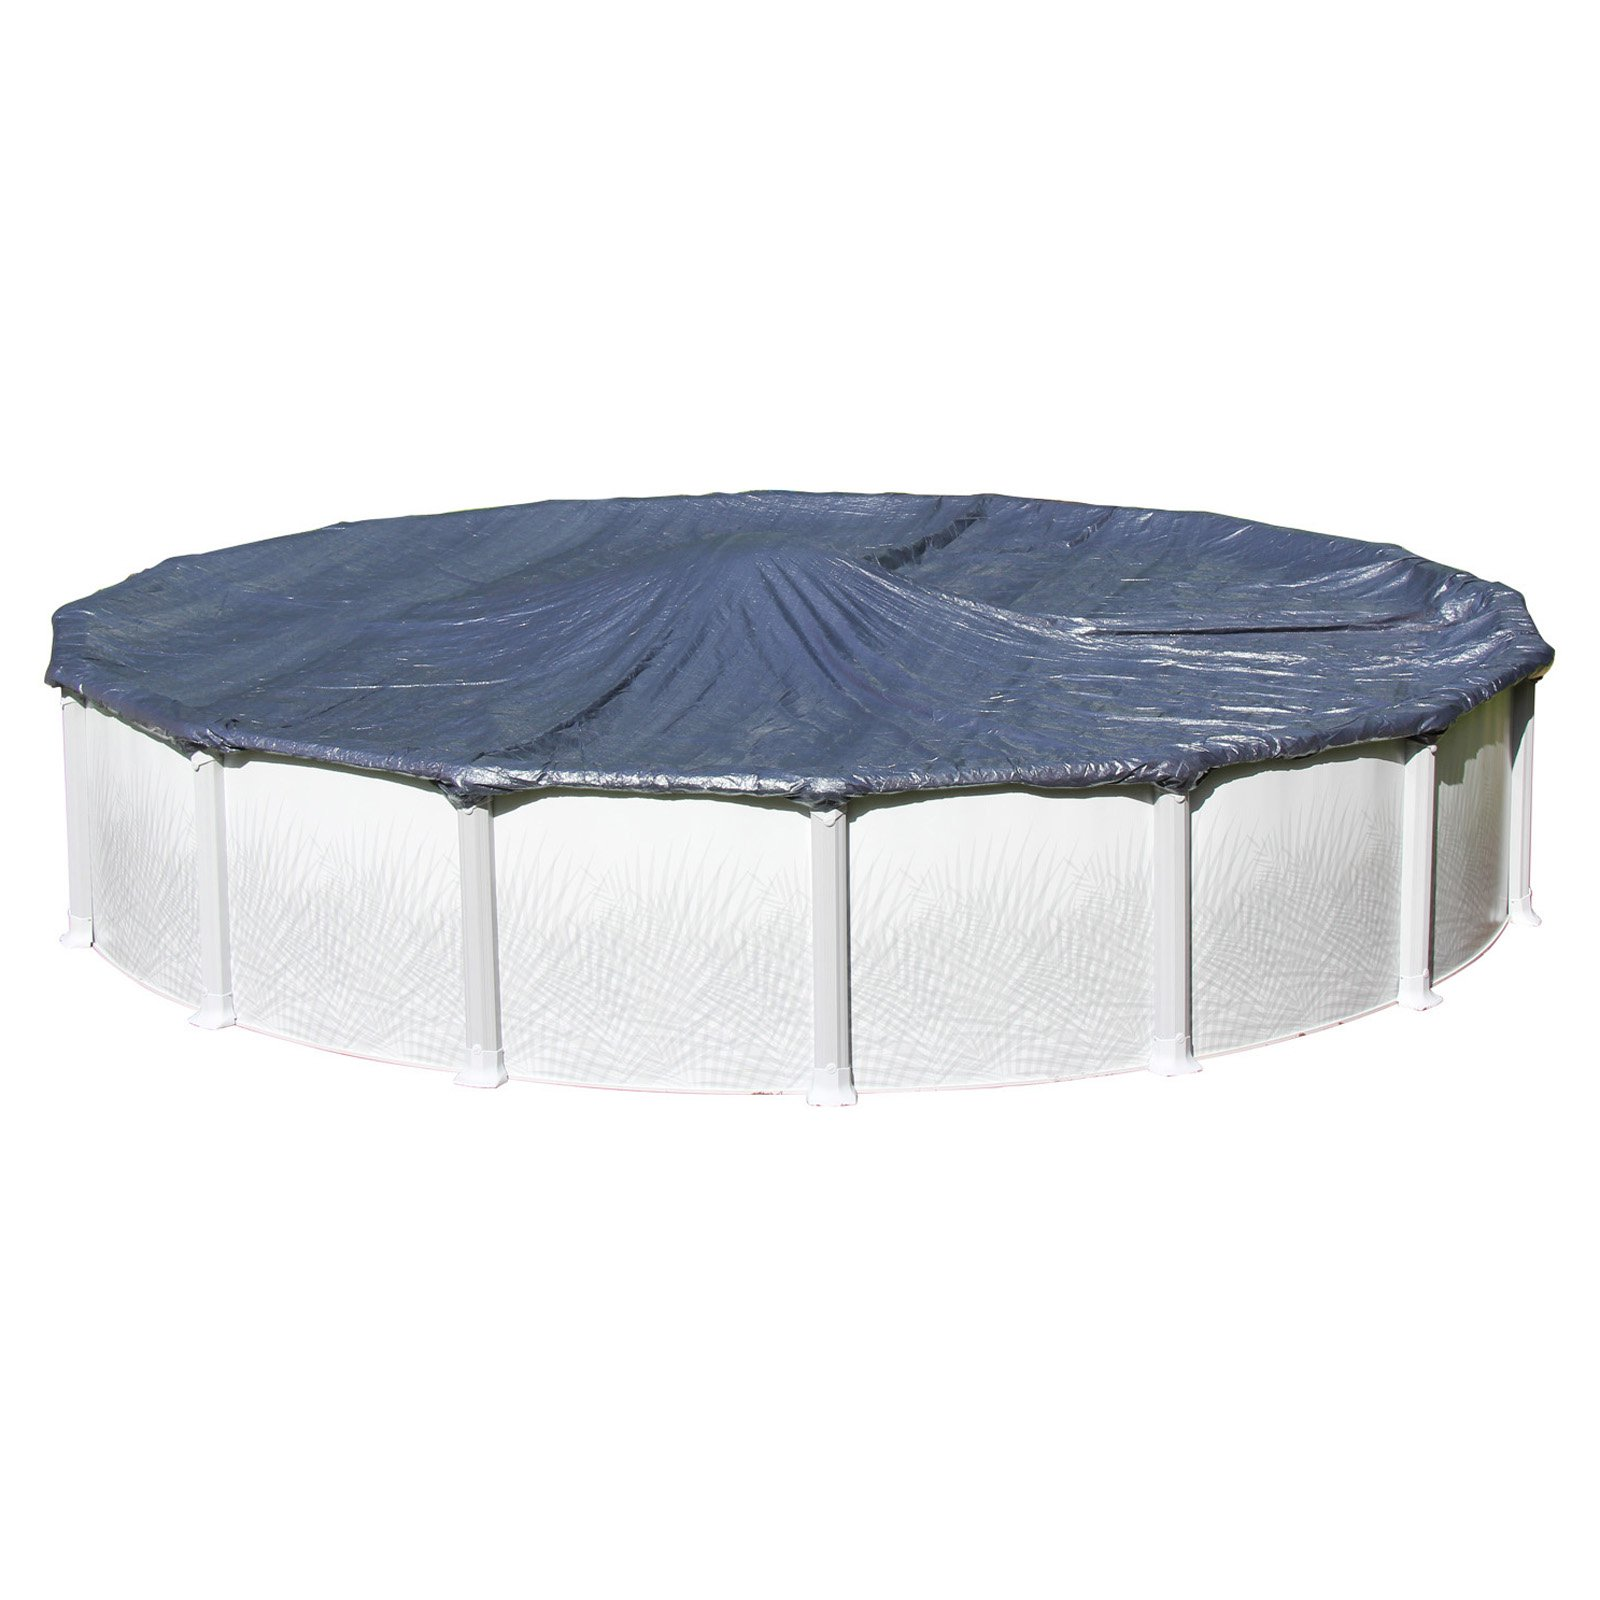 Heritage Deluxe Winter Covers for 12' Round Pools